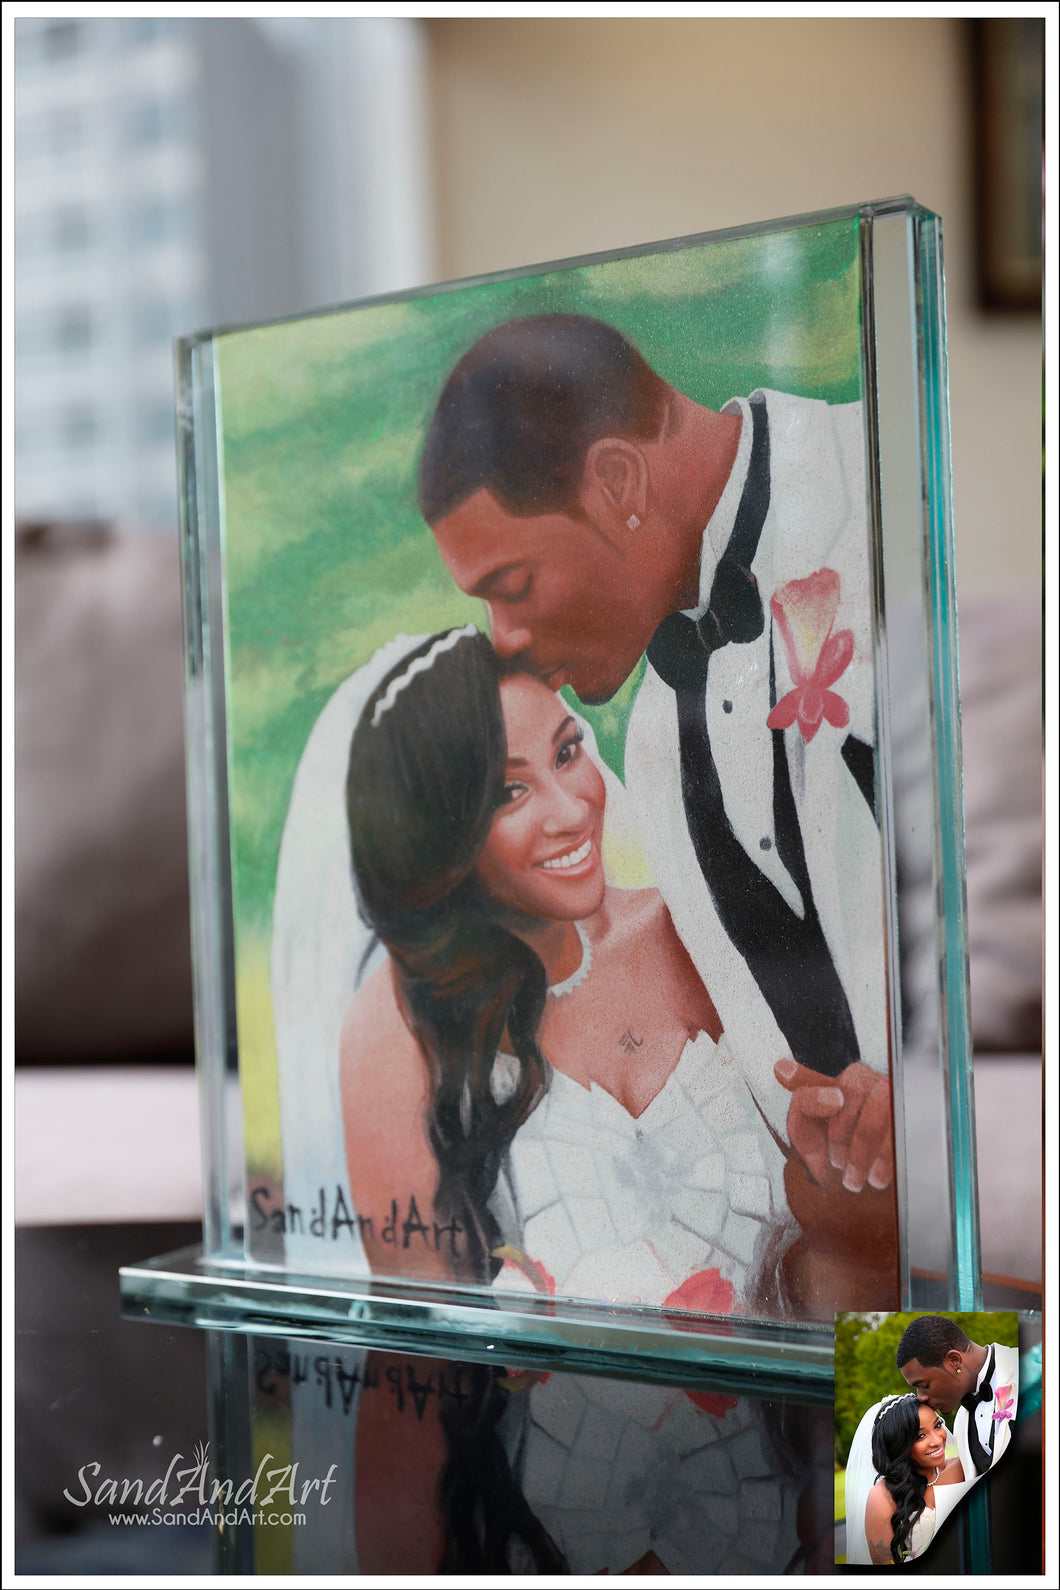 Personalize Your Picture to Sand Portrait into Glass Vase 11.8x13.7